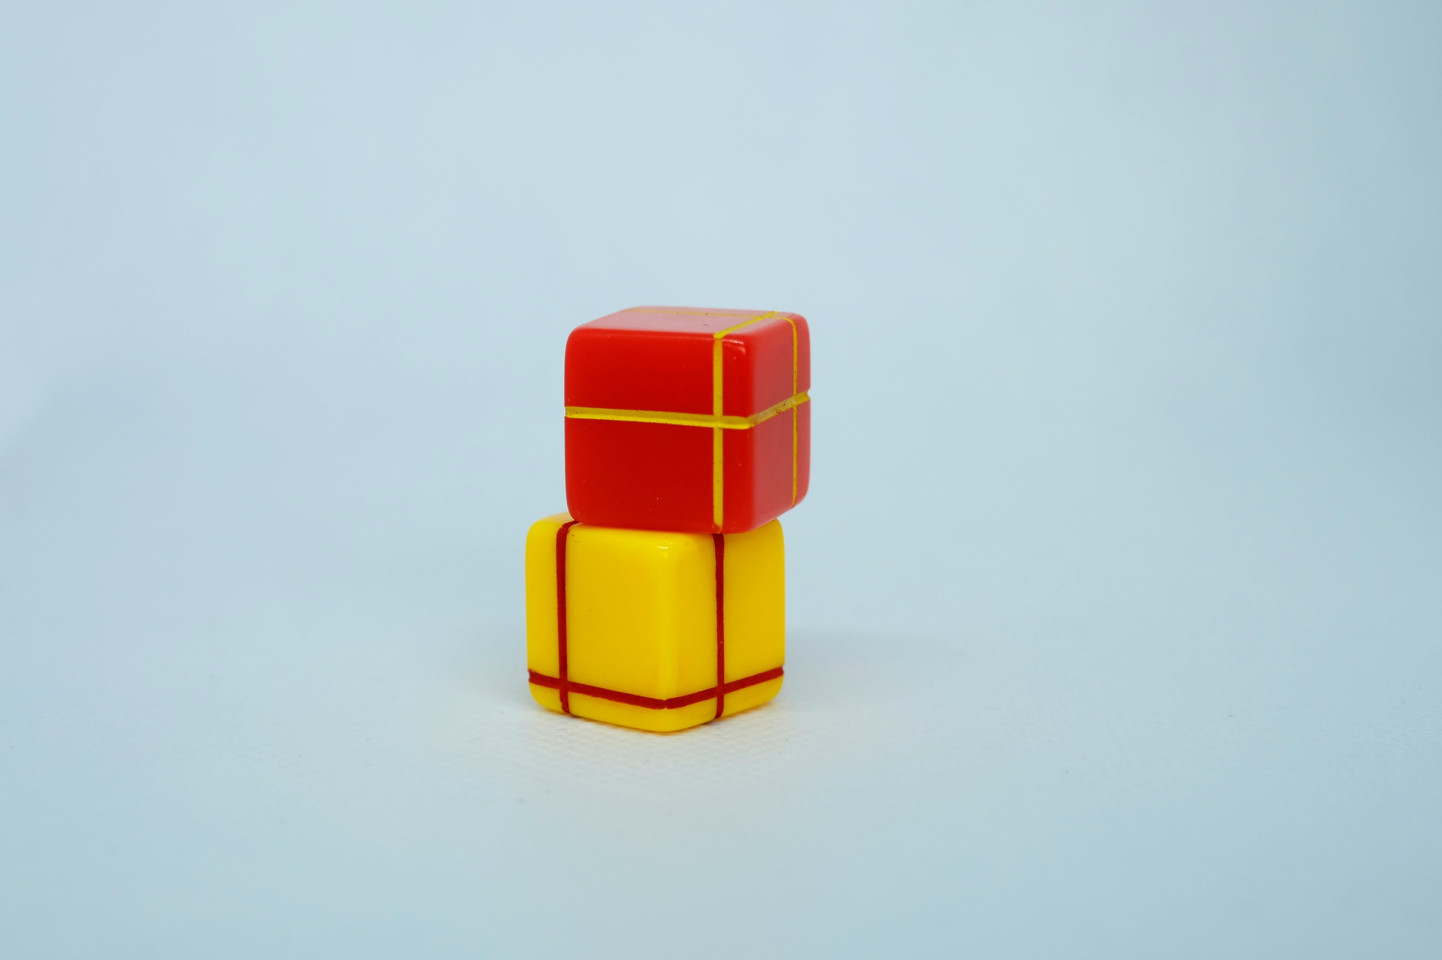 _red/yellow paired dice